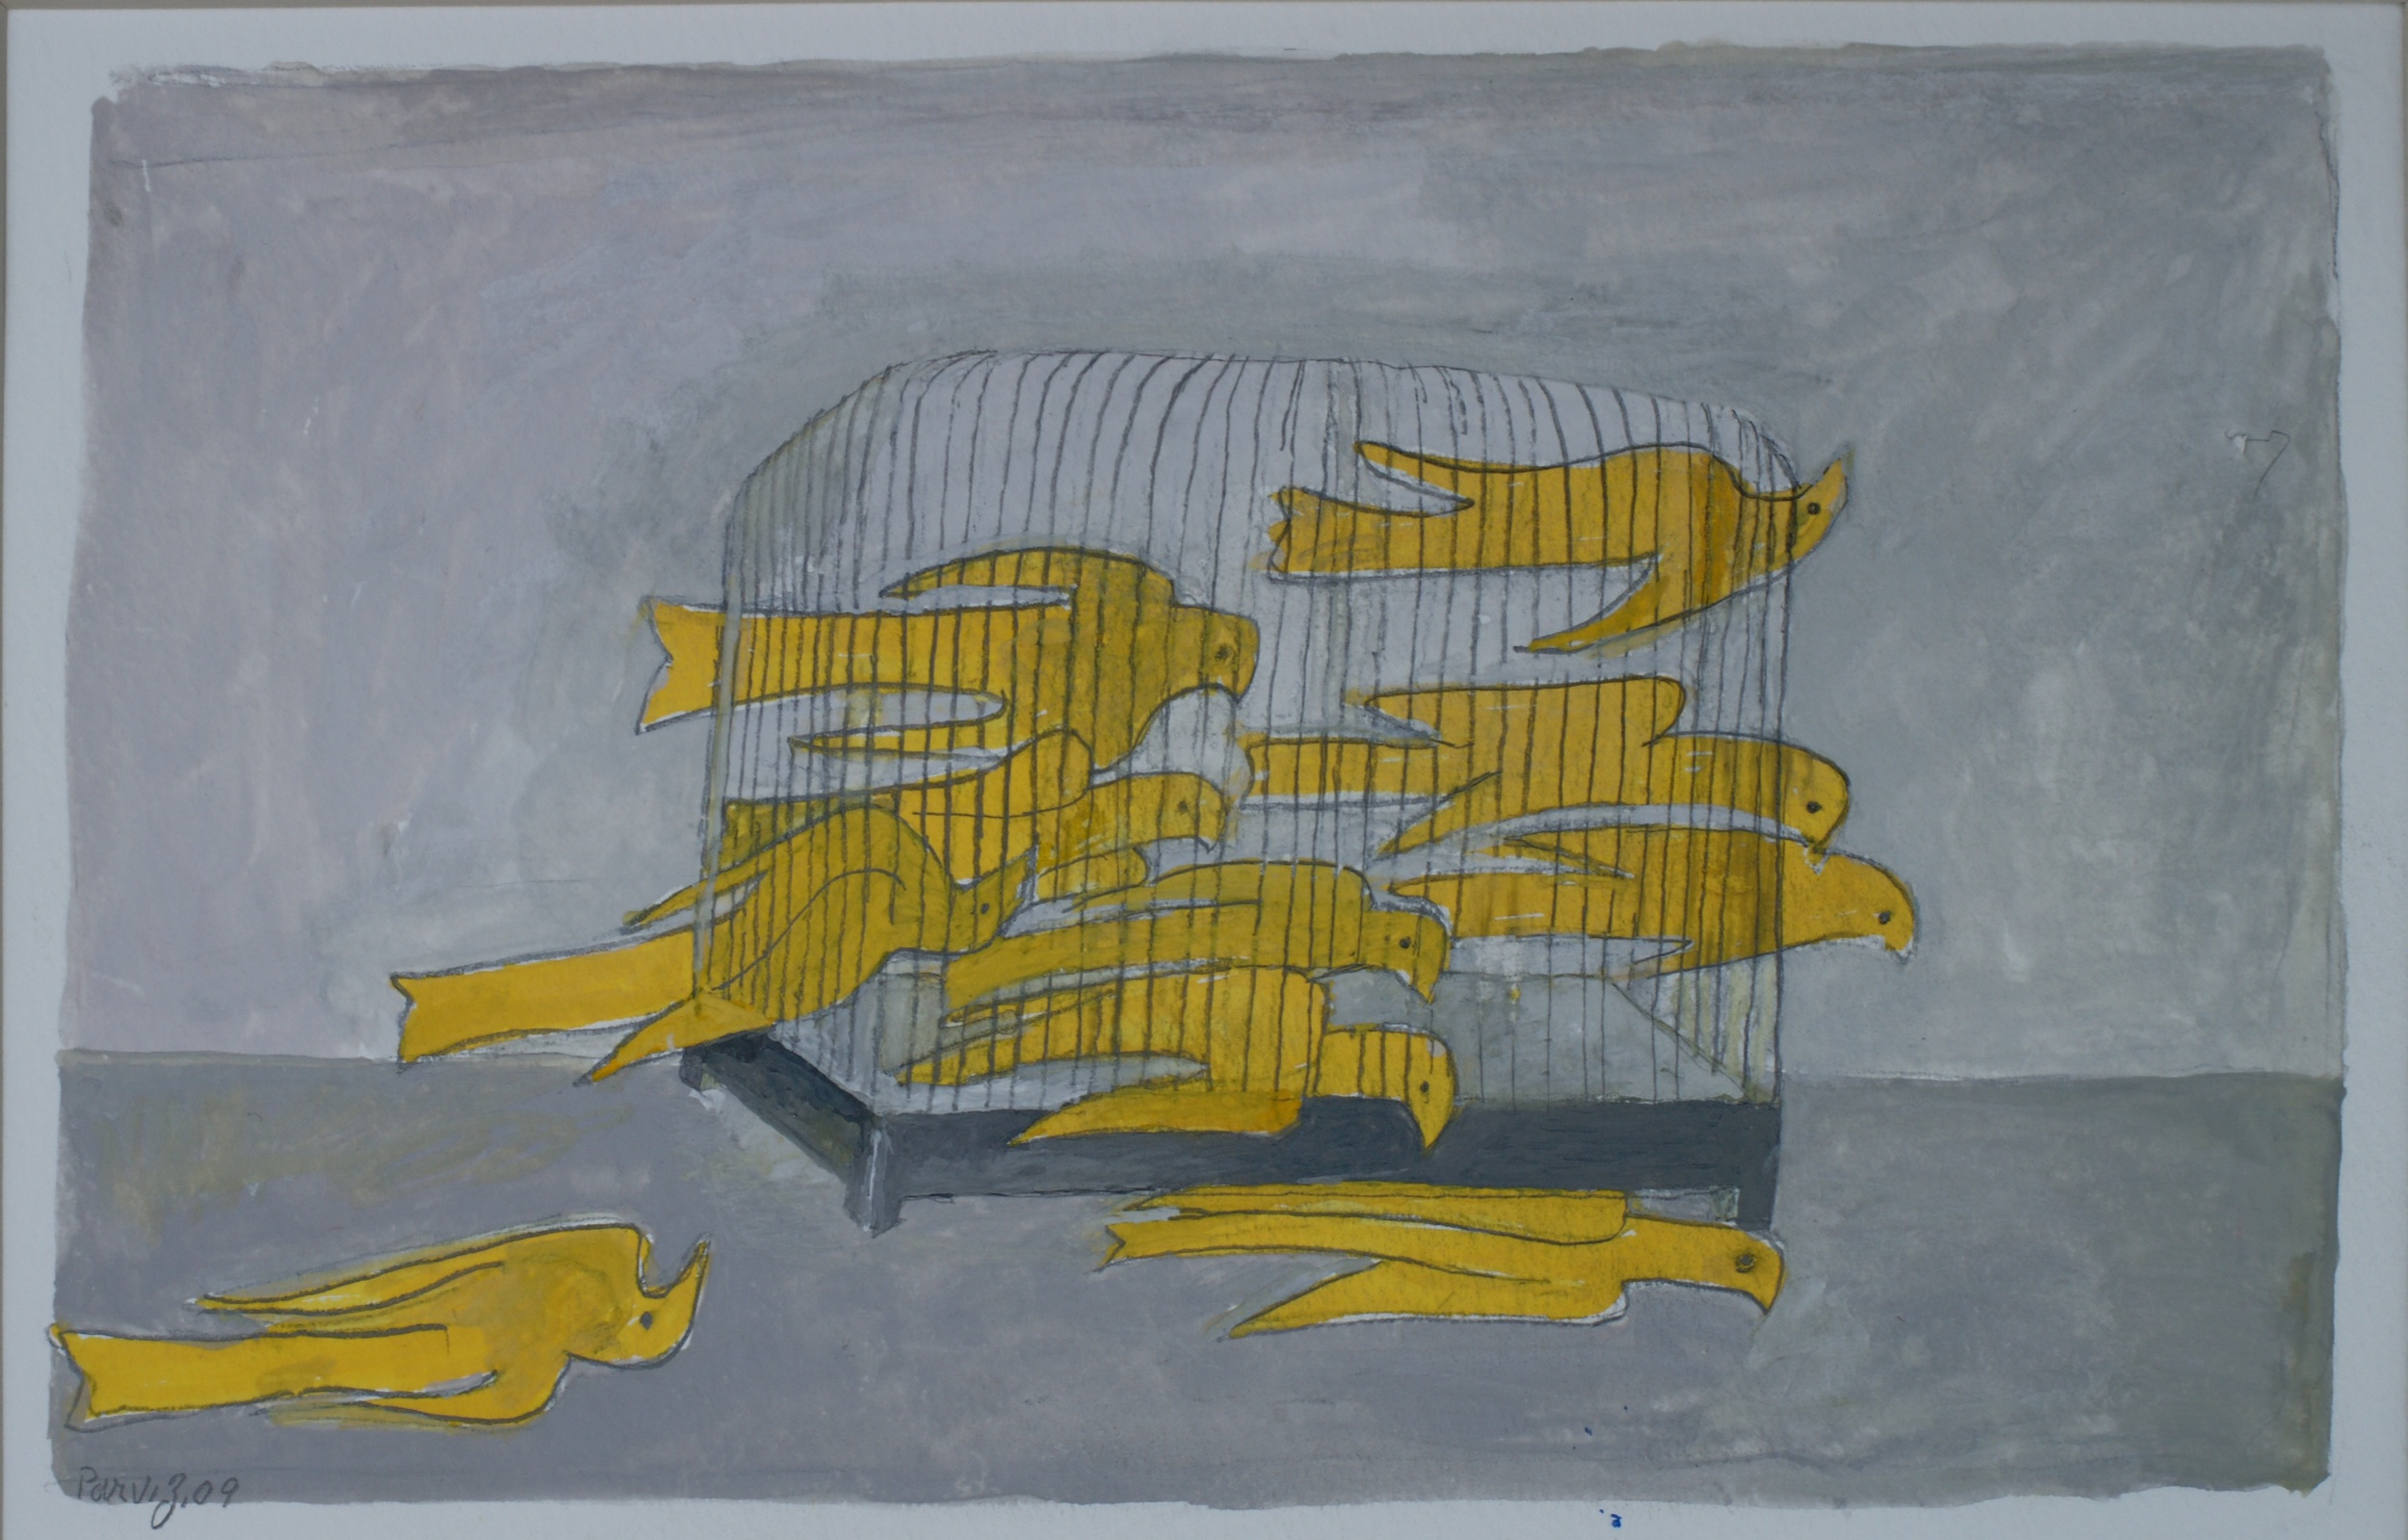 The Birds and Cage (2009)